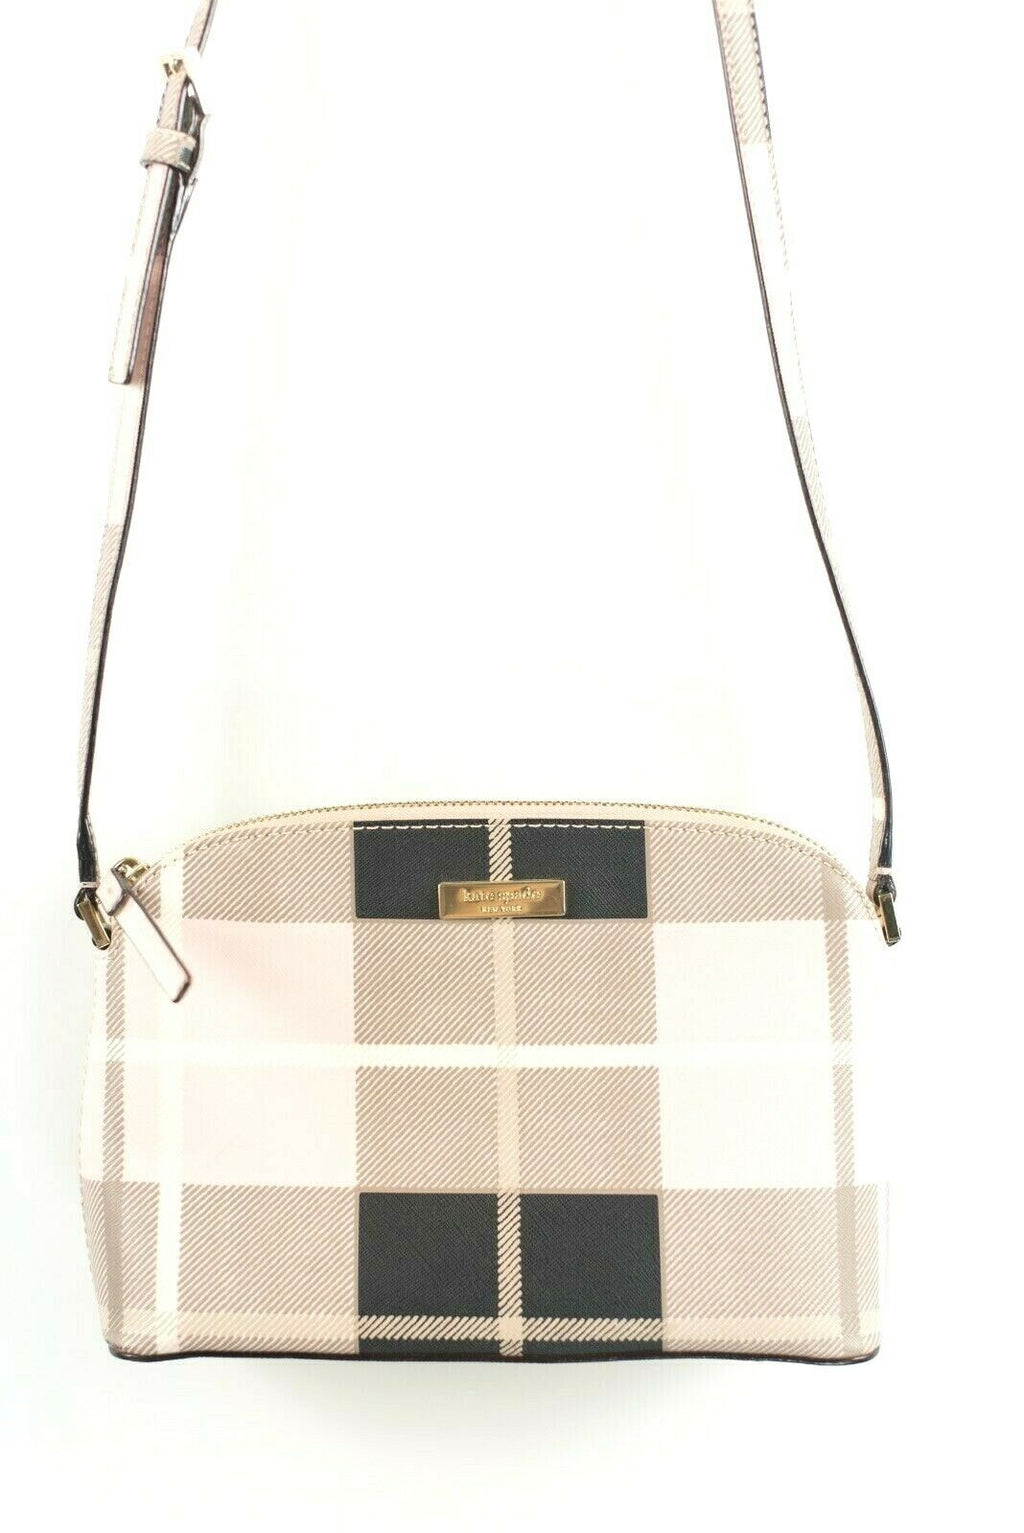 Kate Spade New York Womens Small Pink Crossbody Bag Newbury Lane Printed Hanna